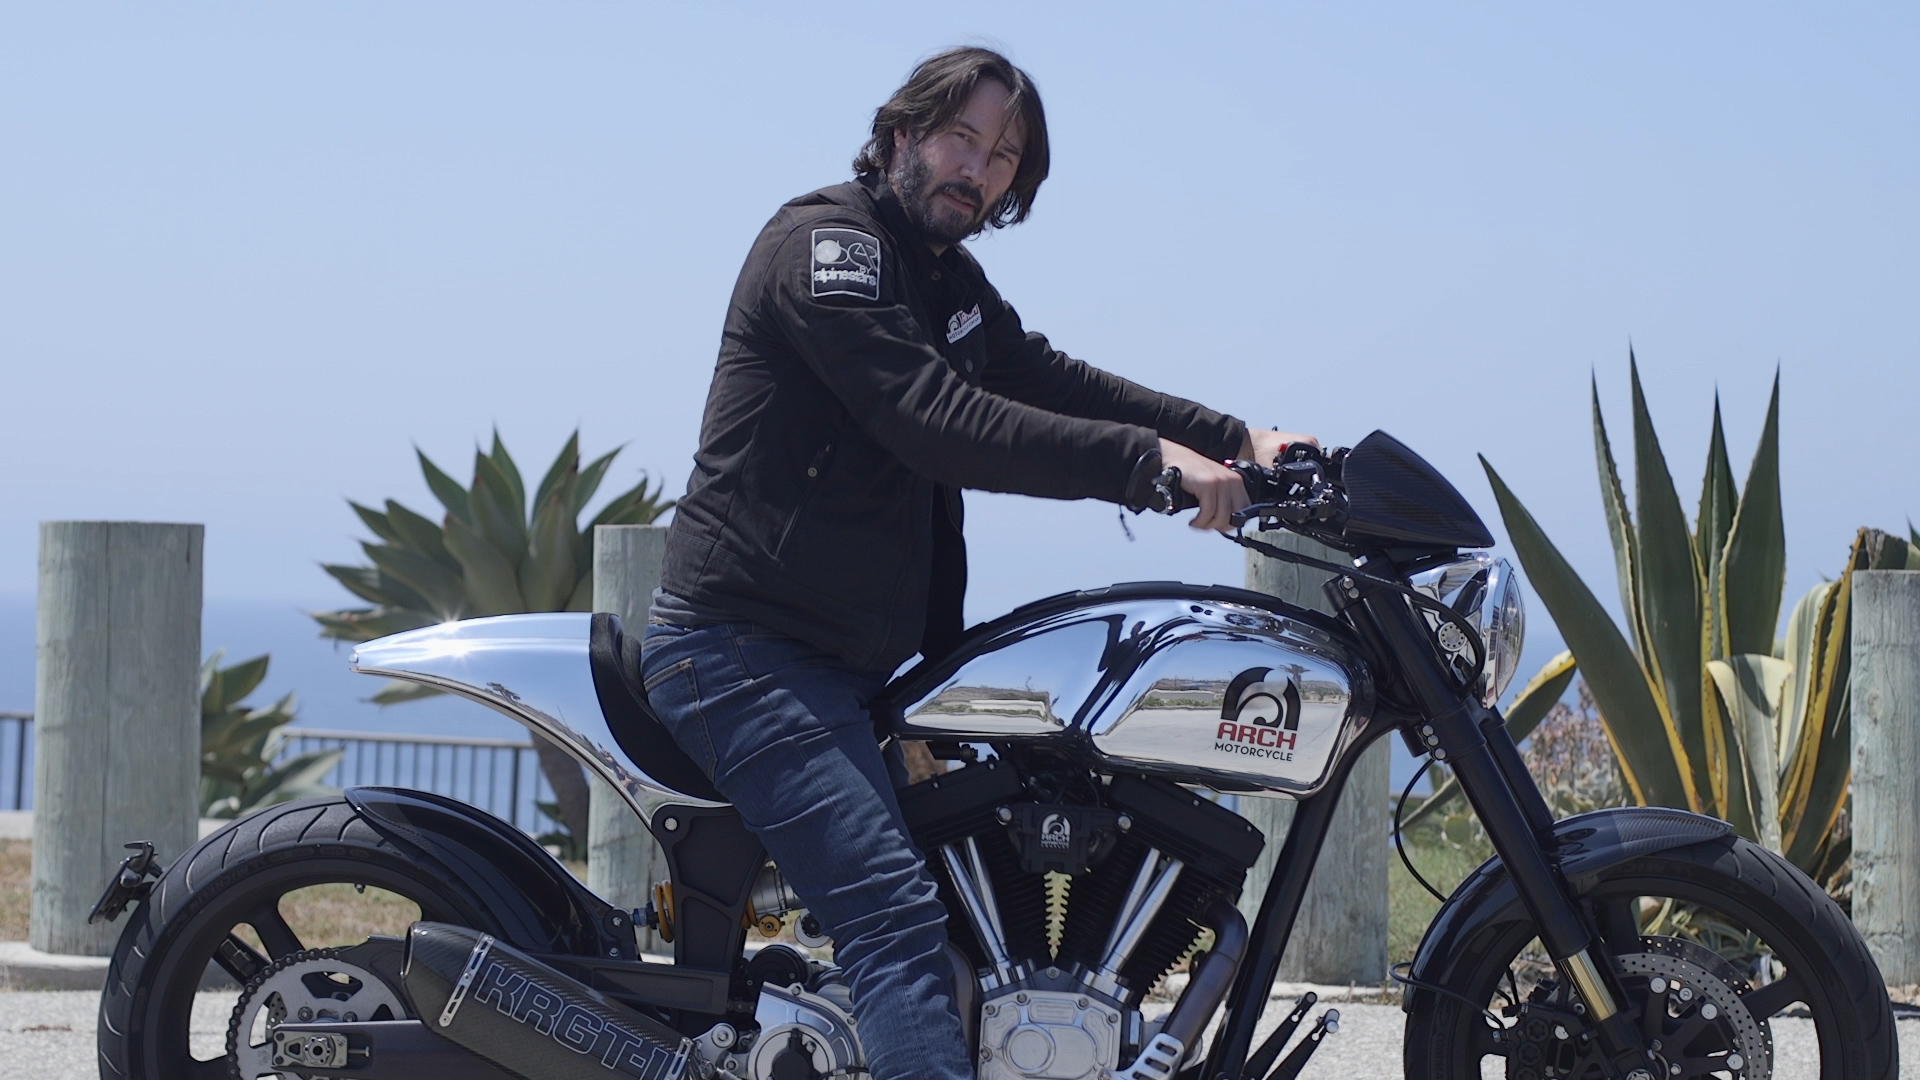 Keanu Reeves Will Build a $78,000 Arch Motorcycle Just for